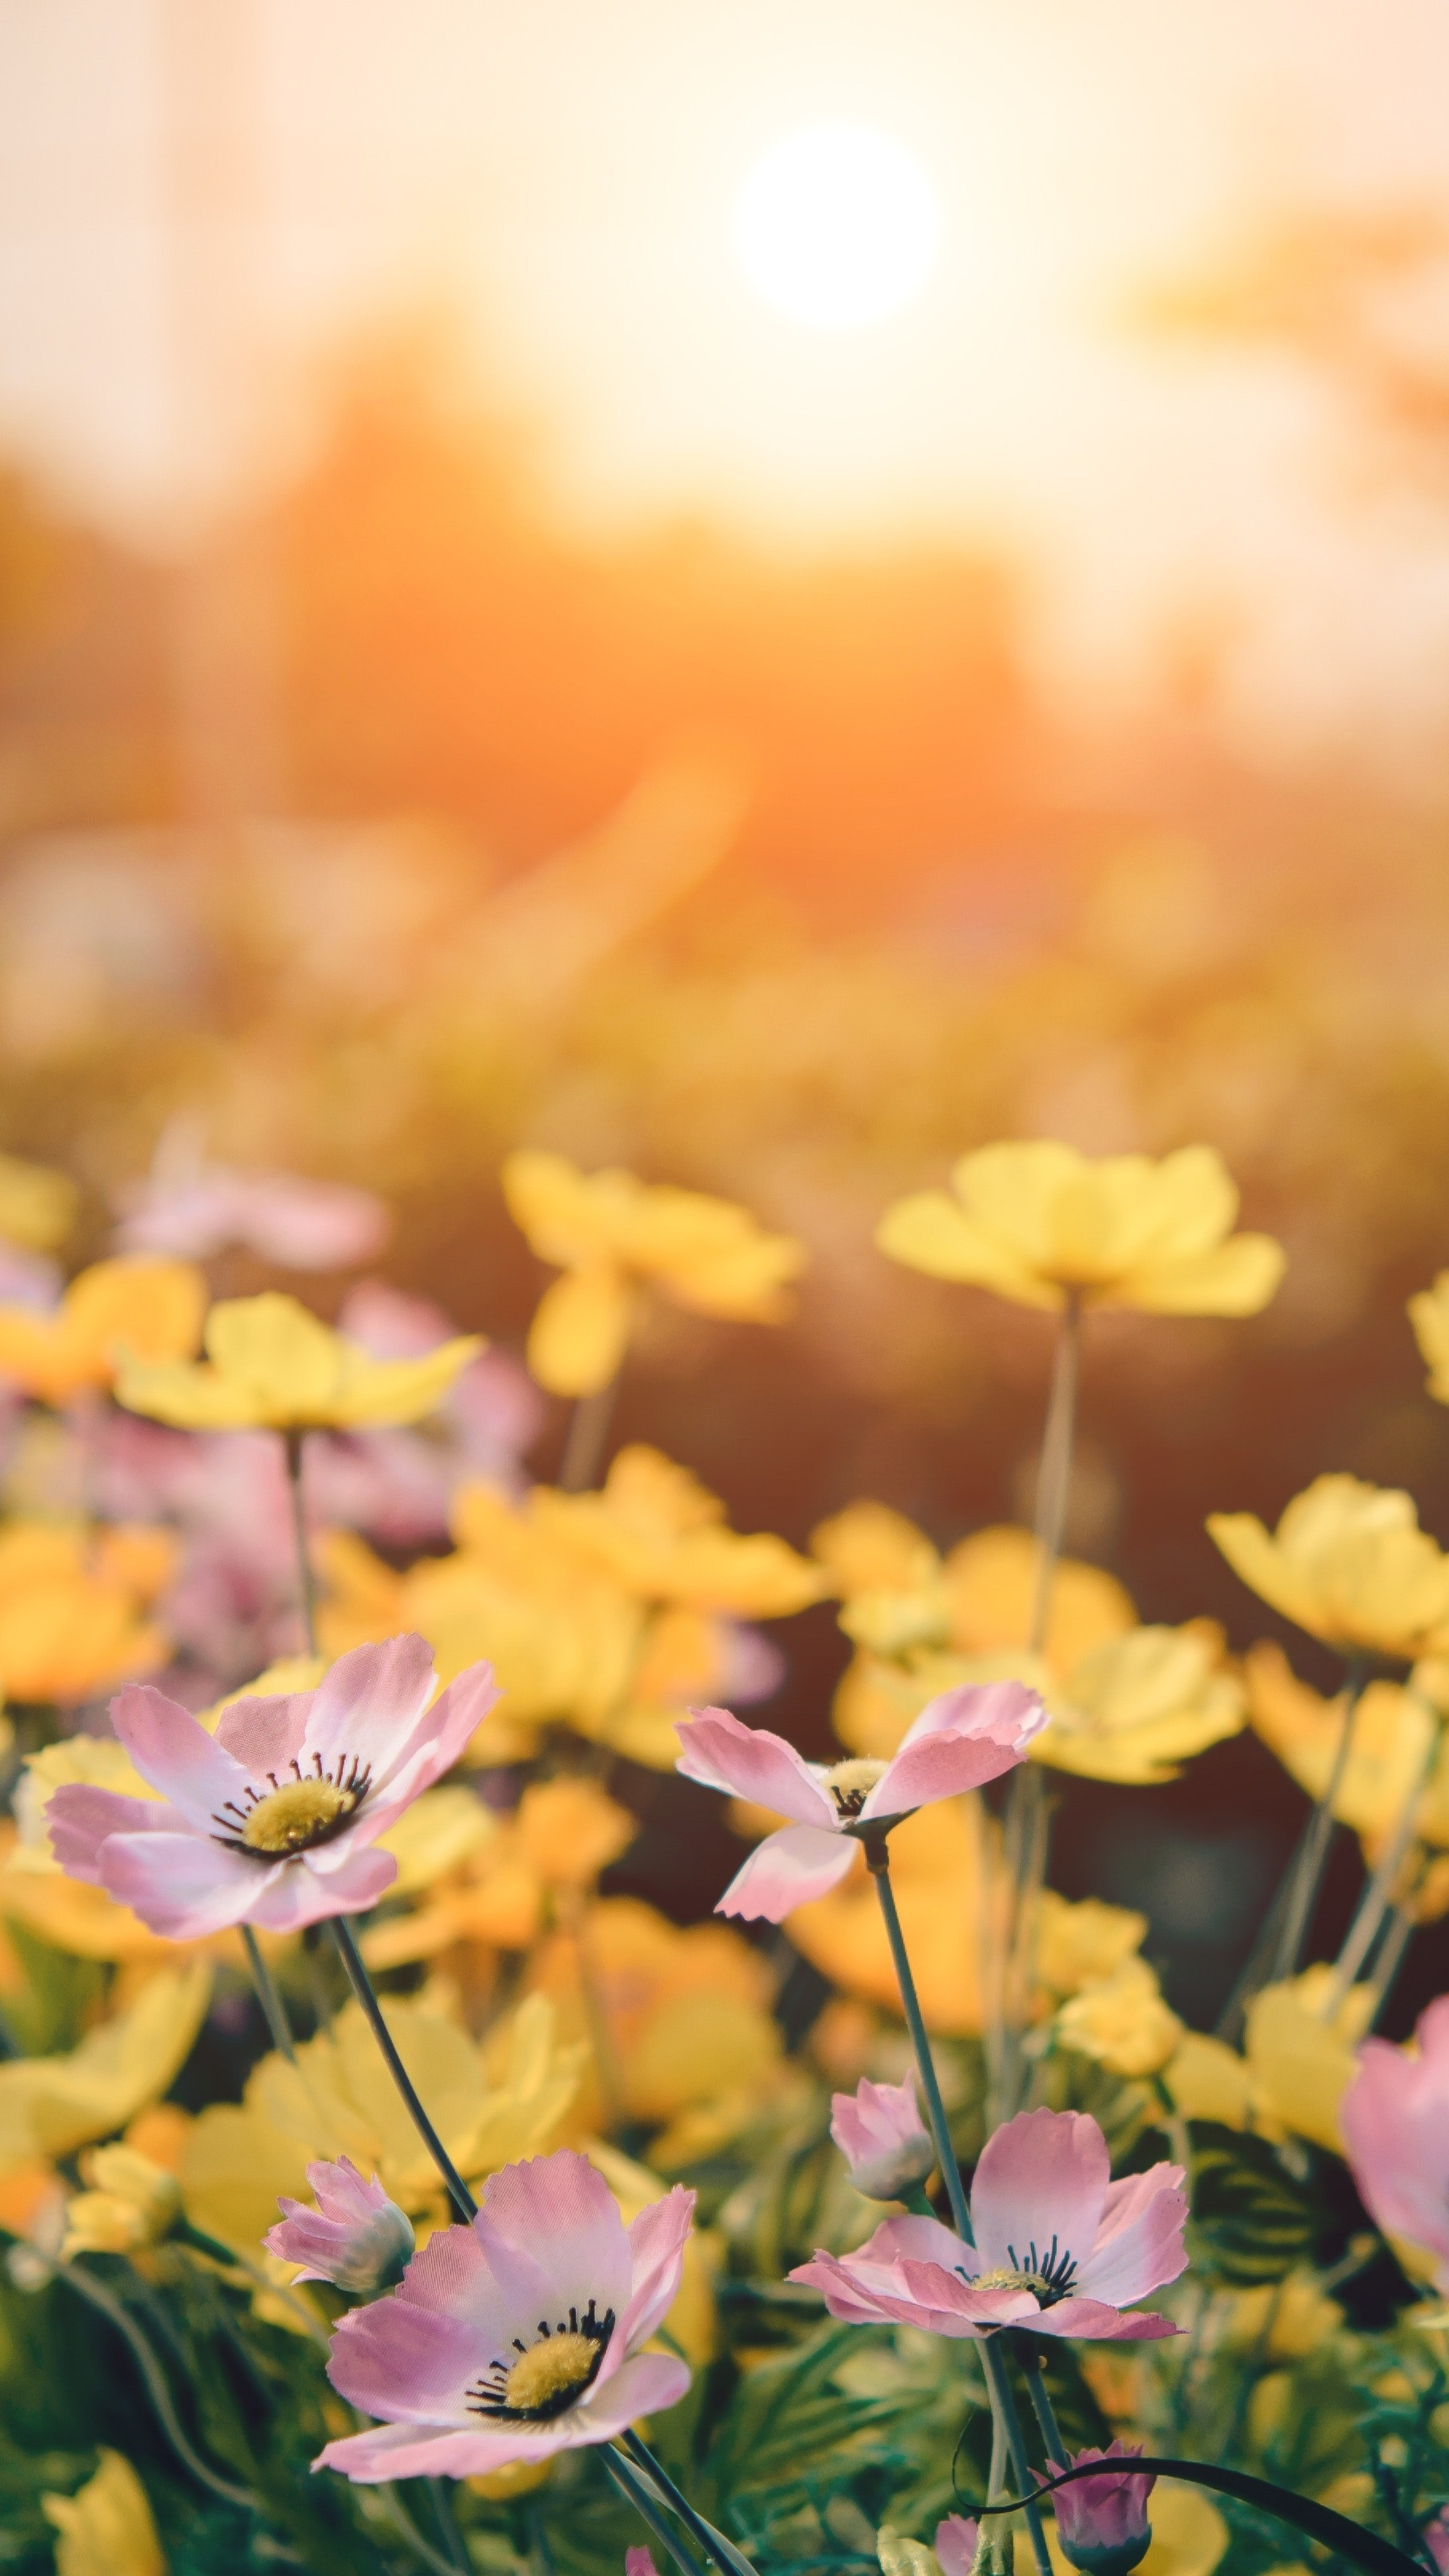 pink-and-yellow-flowers-5k-bs.jpg